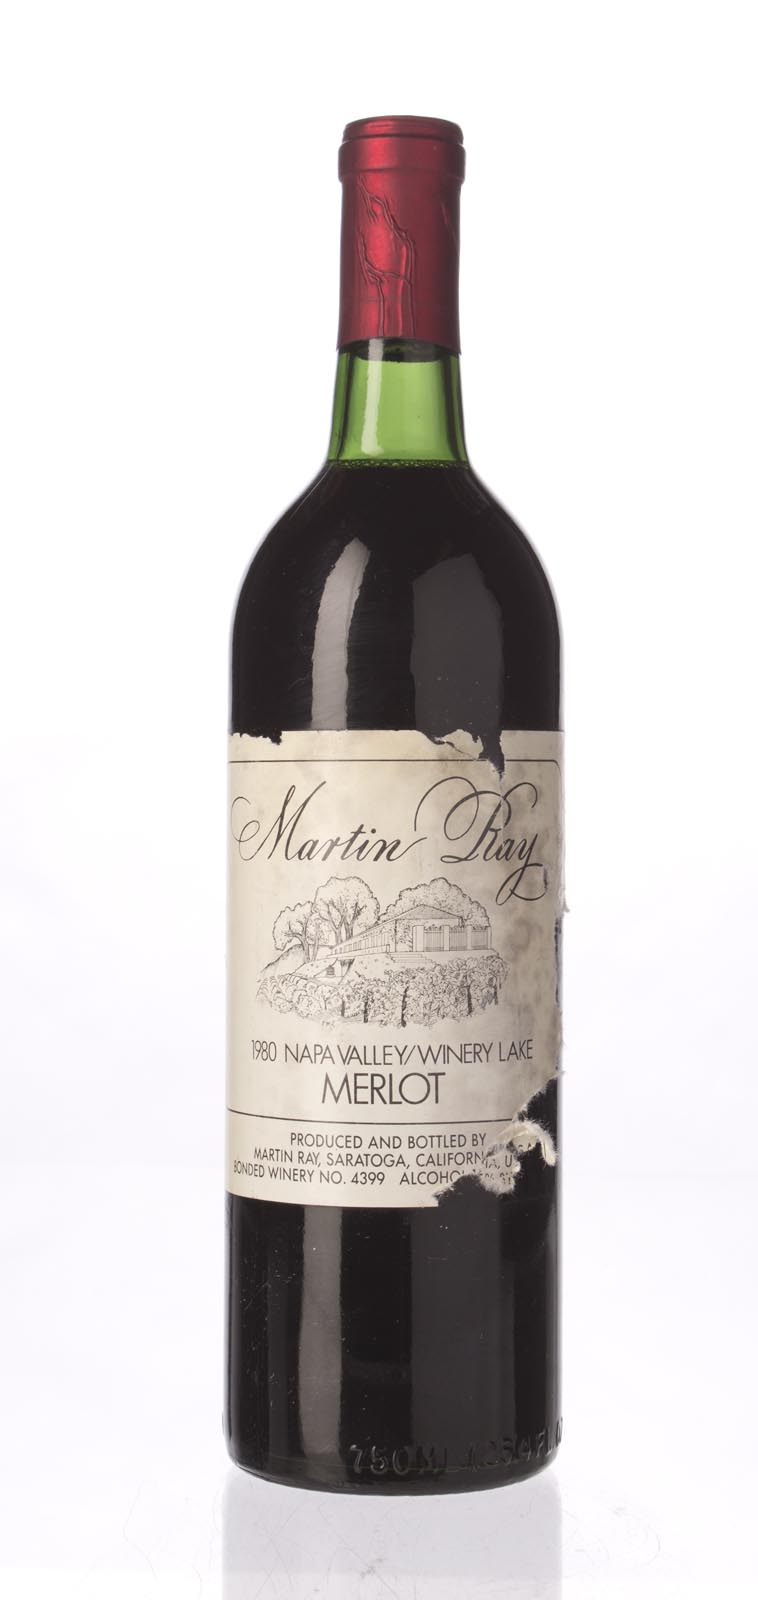 Martin Ray Winery Merlot Winery Lake 1980, 750mL () from The BPW - Merchants of rare and fine wines.